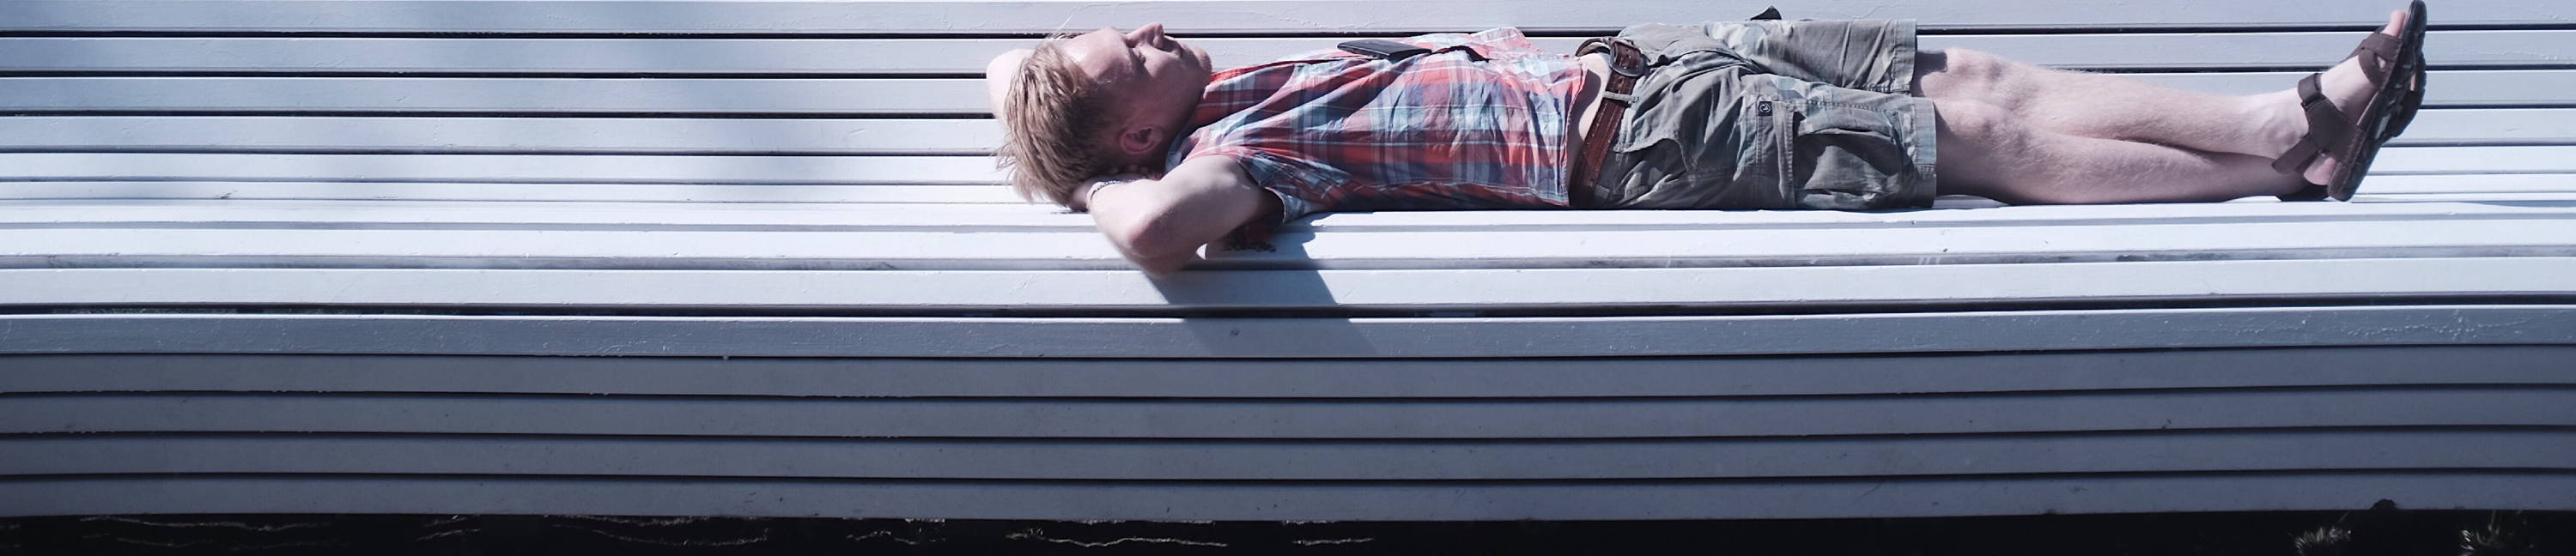 remfit lack of sleep guide. man asleep on a bench